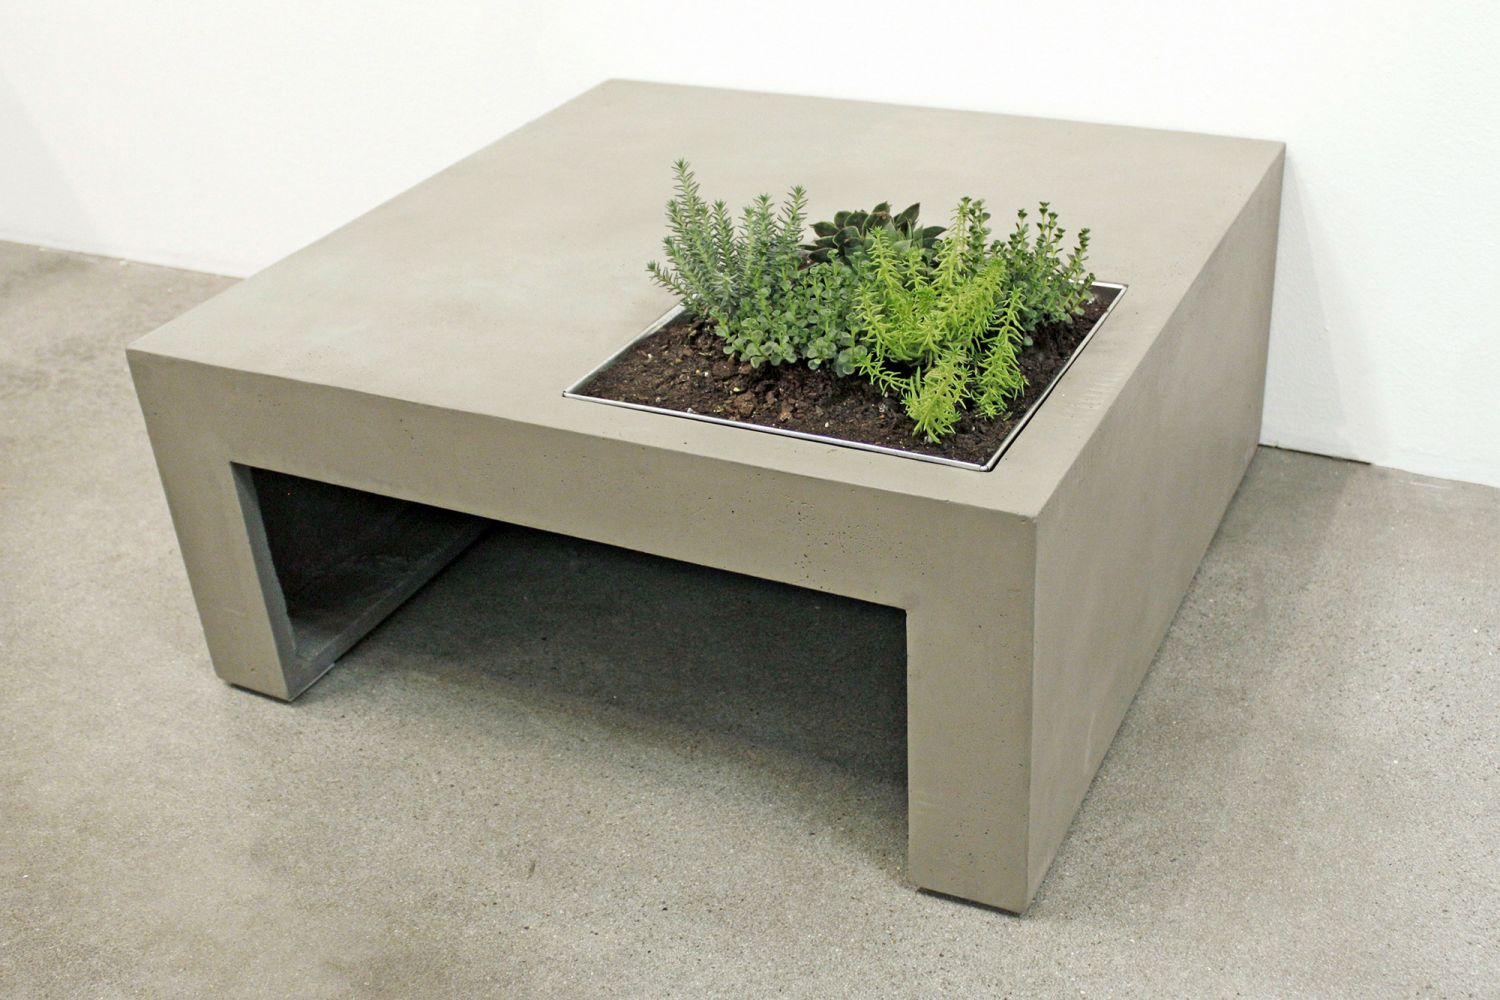 Table De Jardin Beton Table De Jardin En Beton Table En Beton Exterieur Table